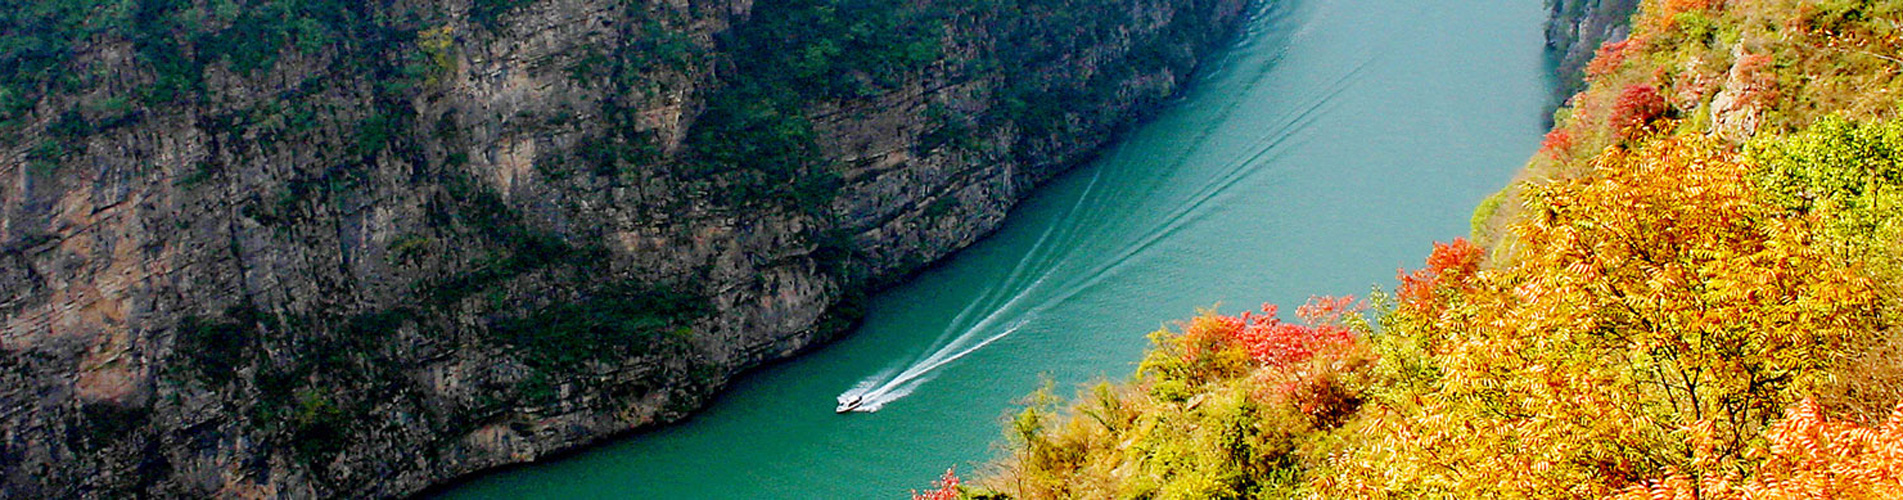 Yangtze cruise family tour